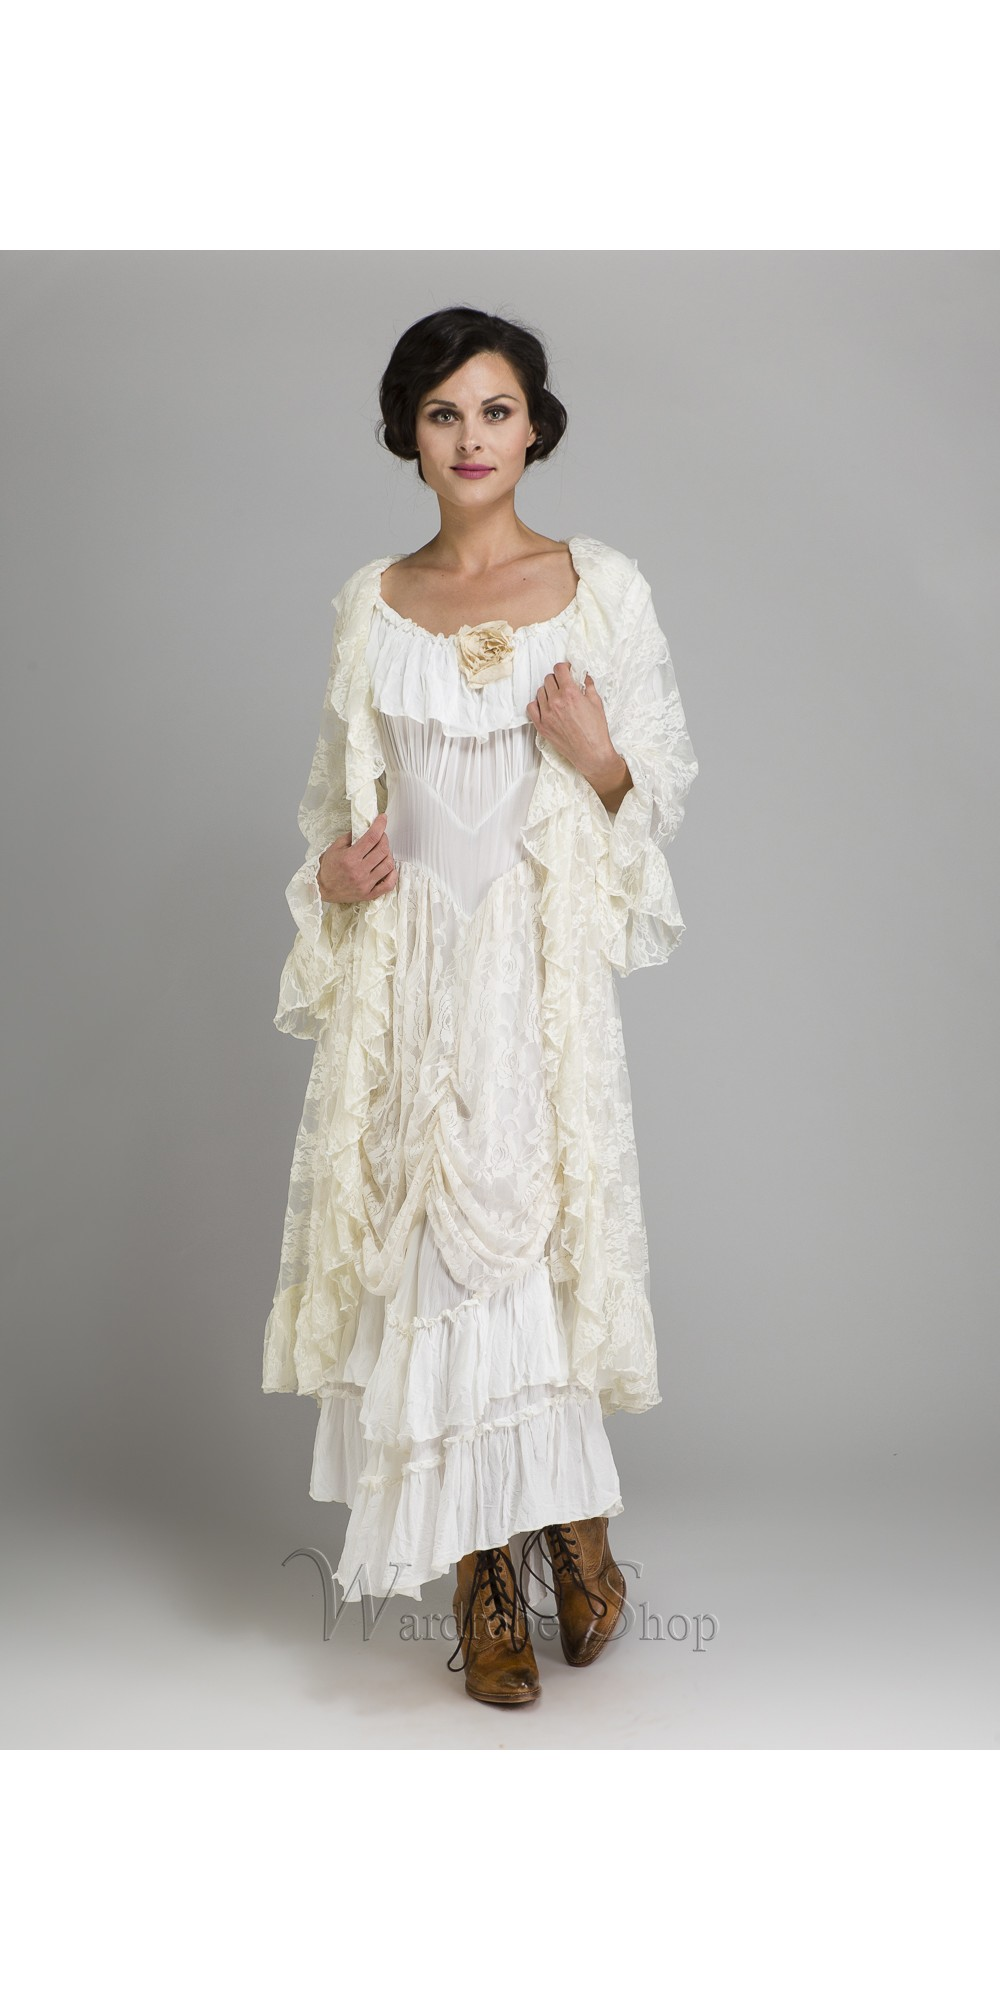 Western Bridal Dresses, Skirts and Tops by Marrika Nakk